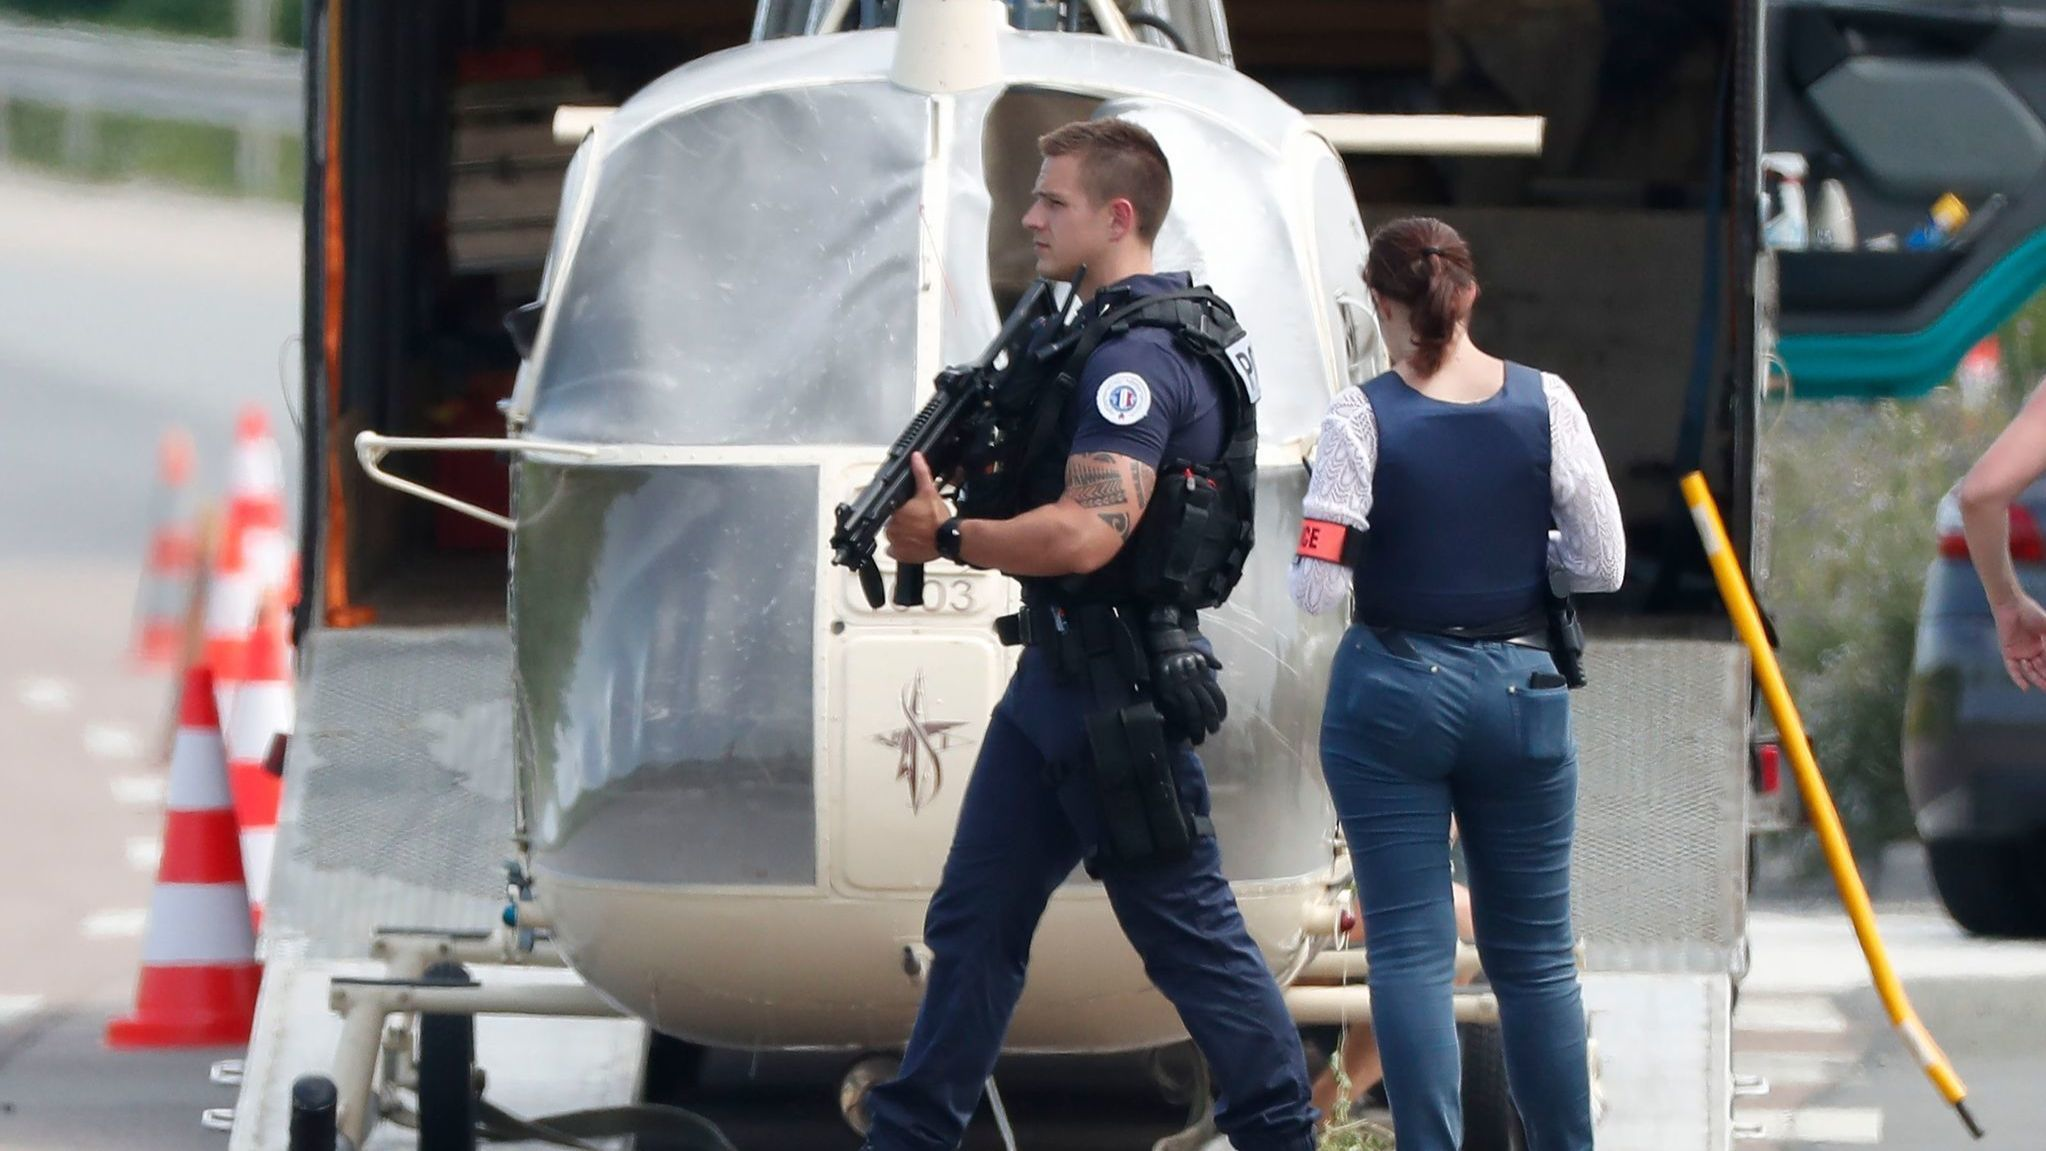 Notorious French criminal escapes from prison with help from heavily armed men in helicopter